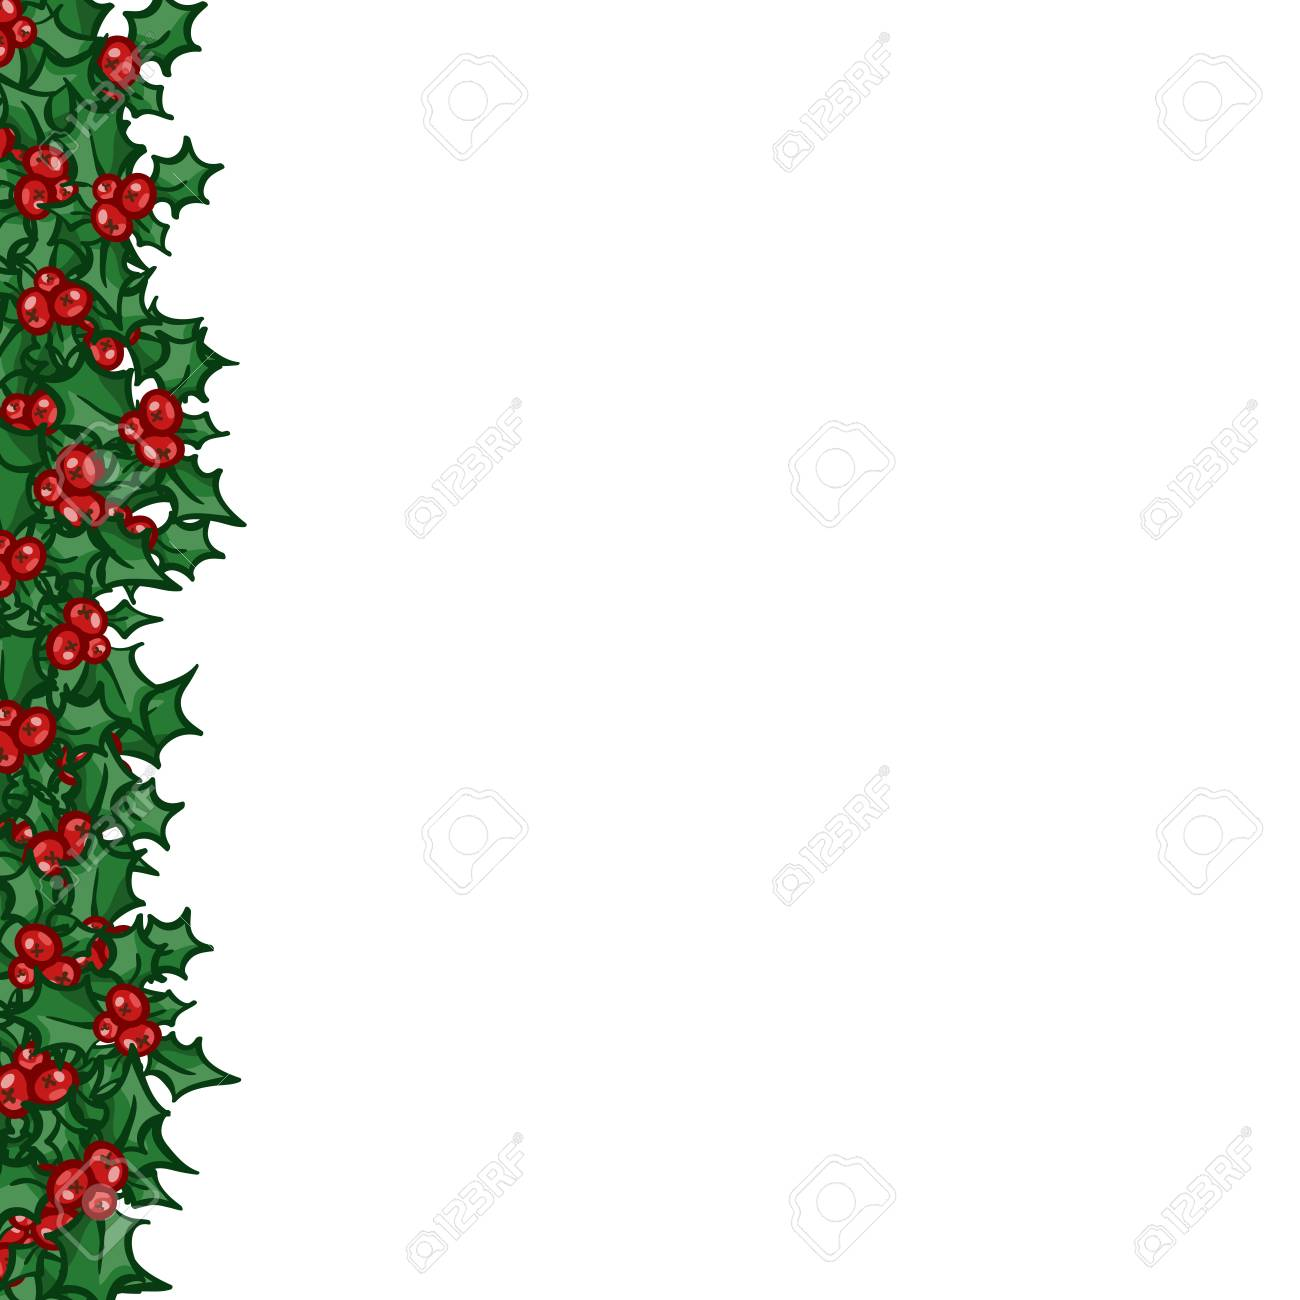 Holly With Berry Left Side Border Vector Christmas And New Year Royalty Free Cliparts Vectors And Stock Illustration Image 68609554